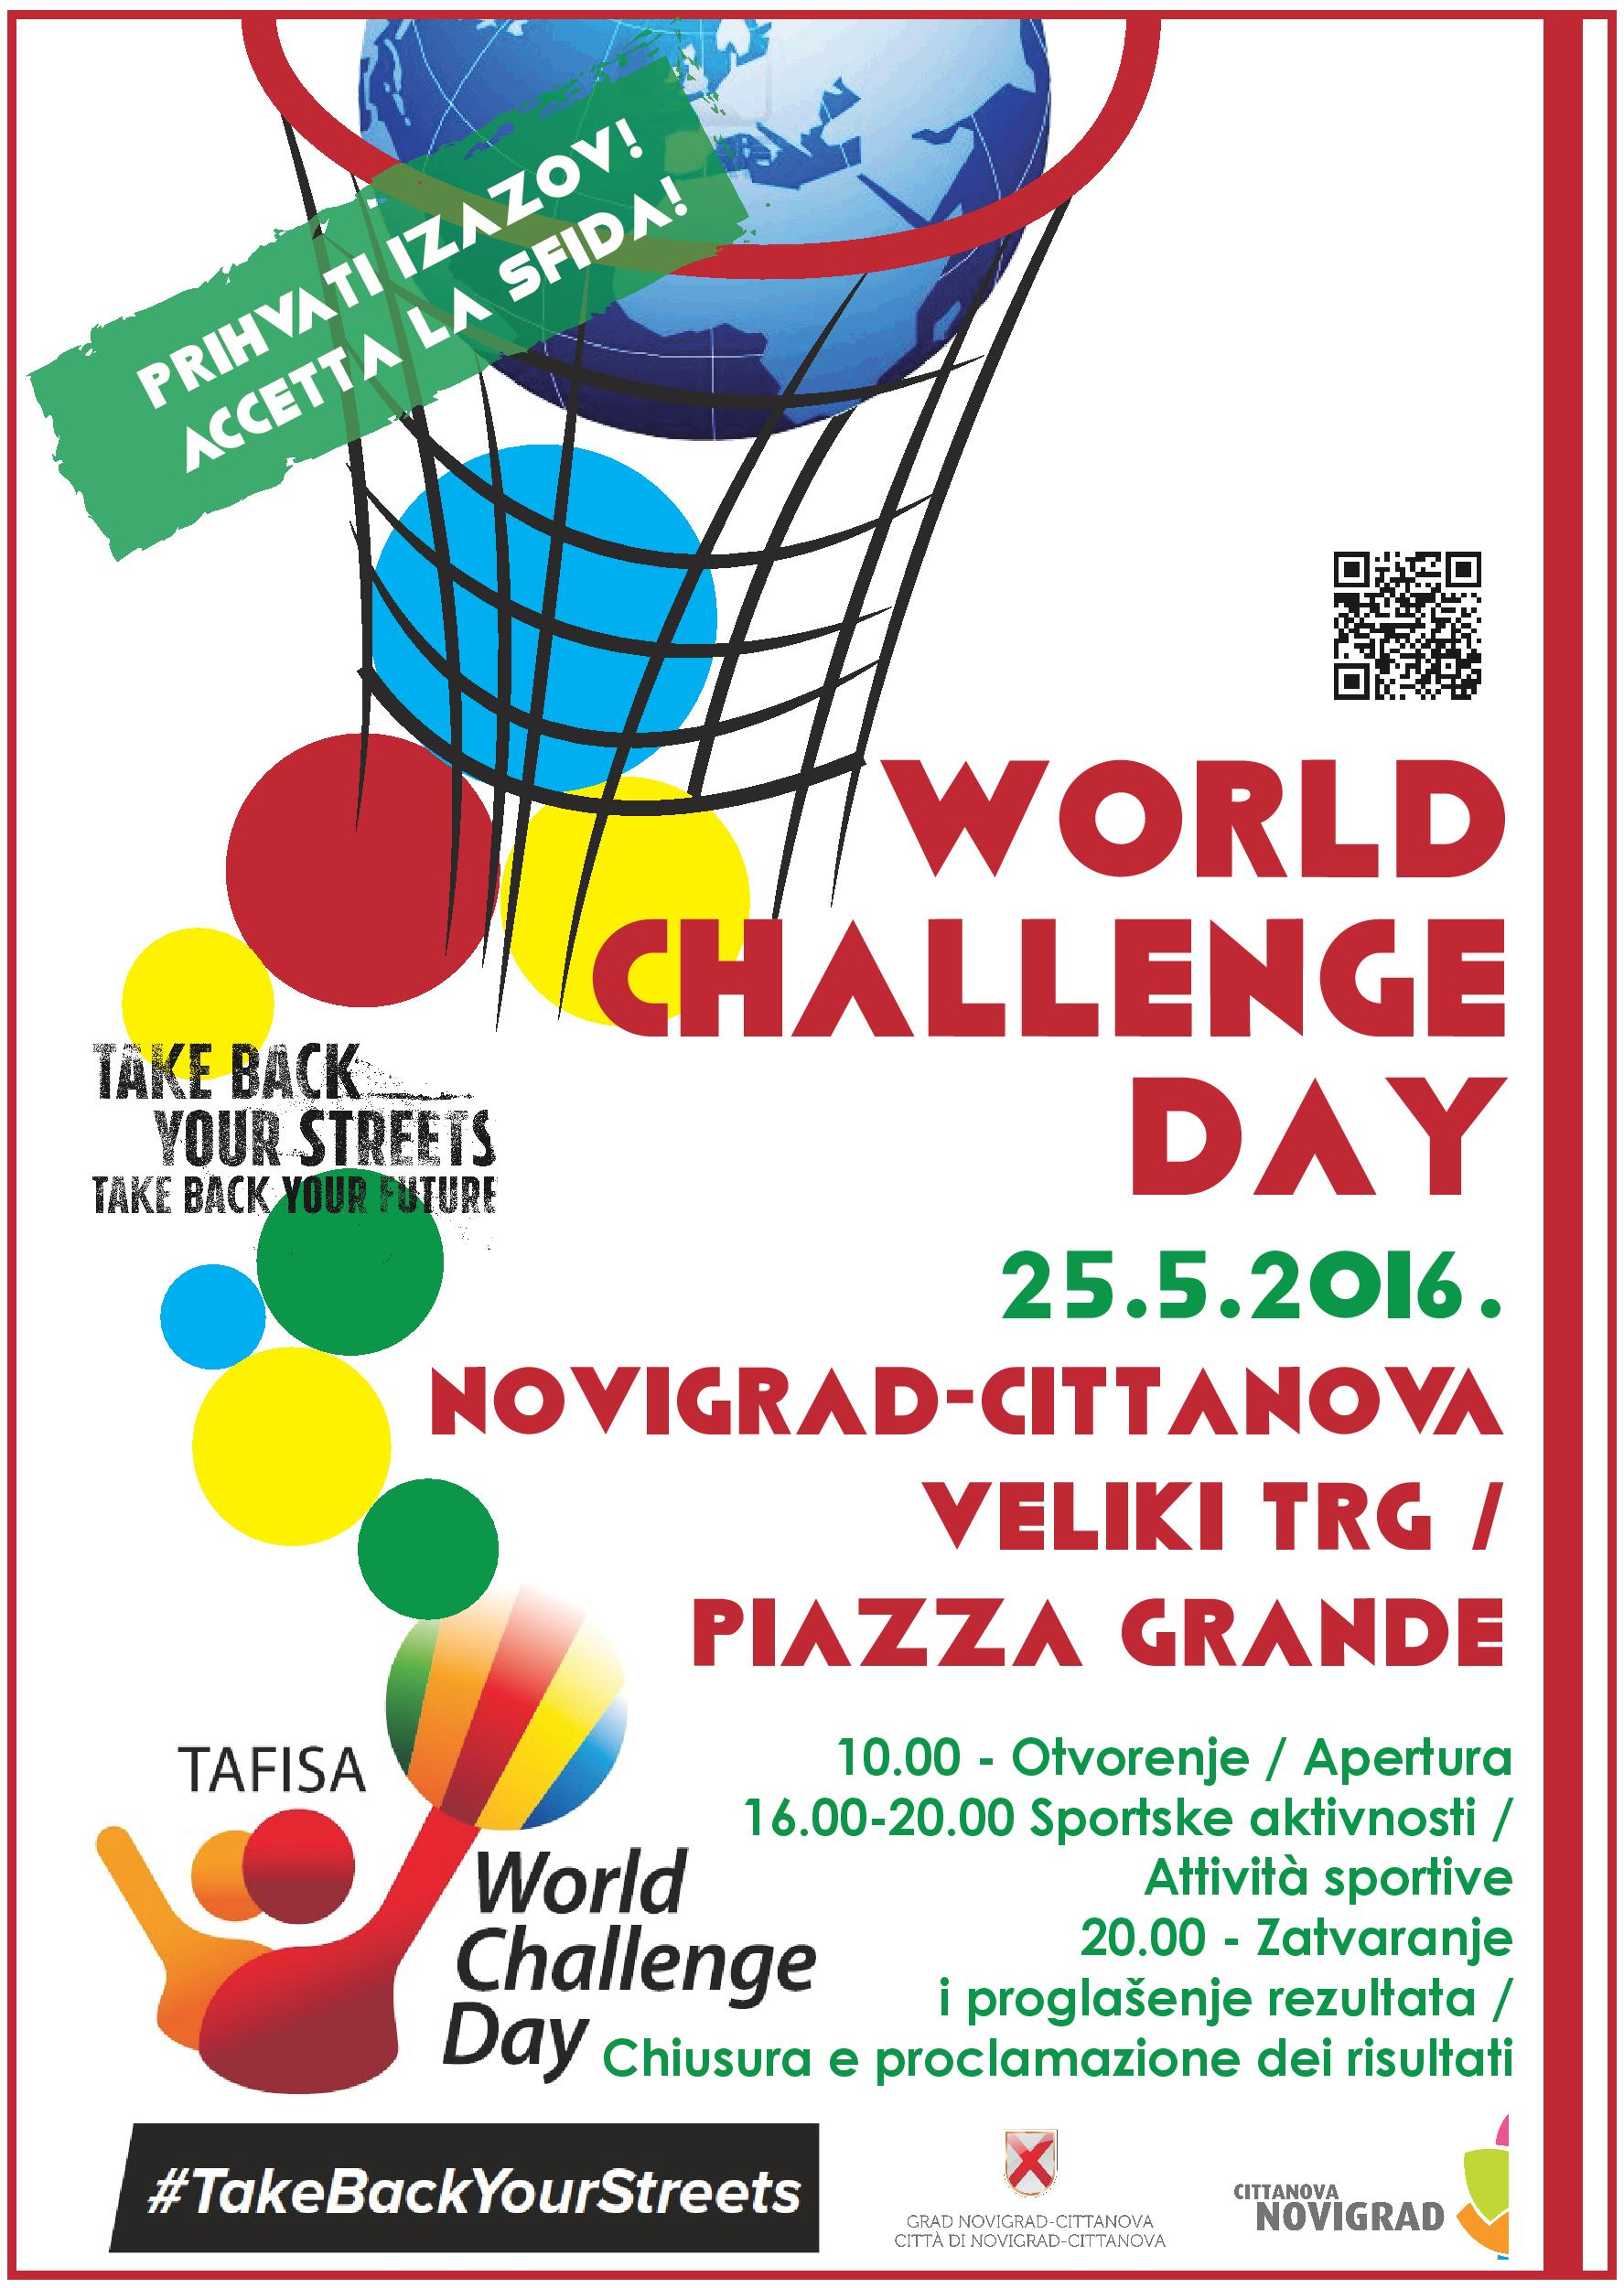 http://www.novigrad.hr/world_challenge_day